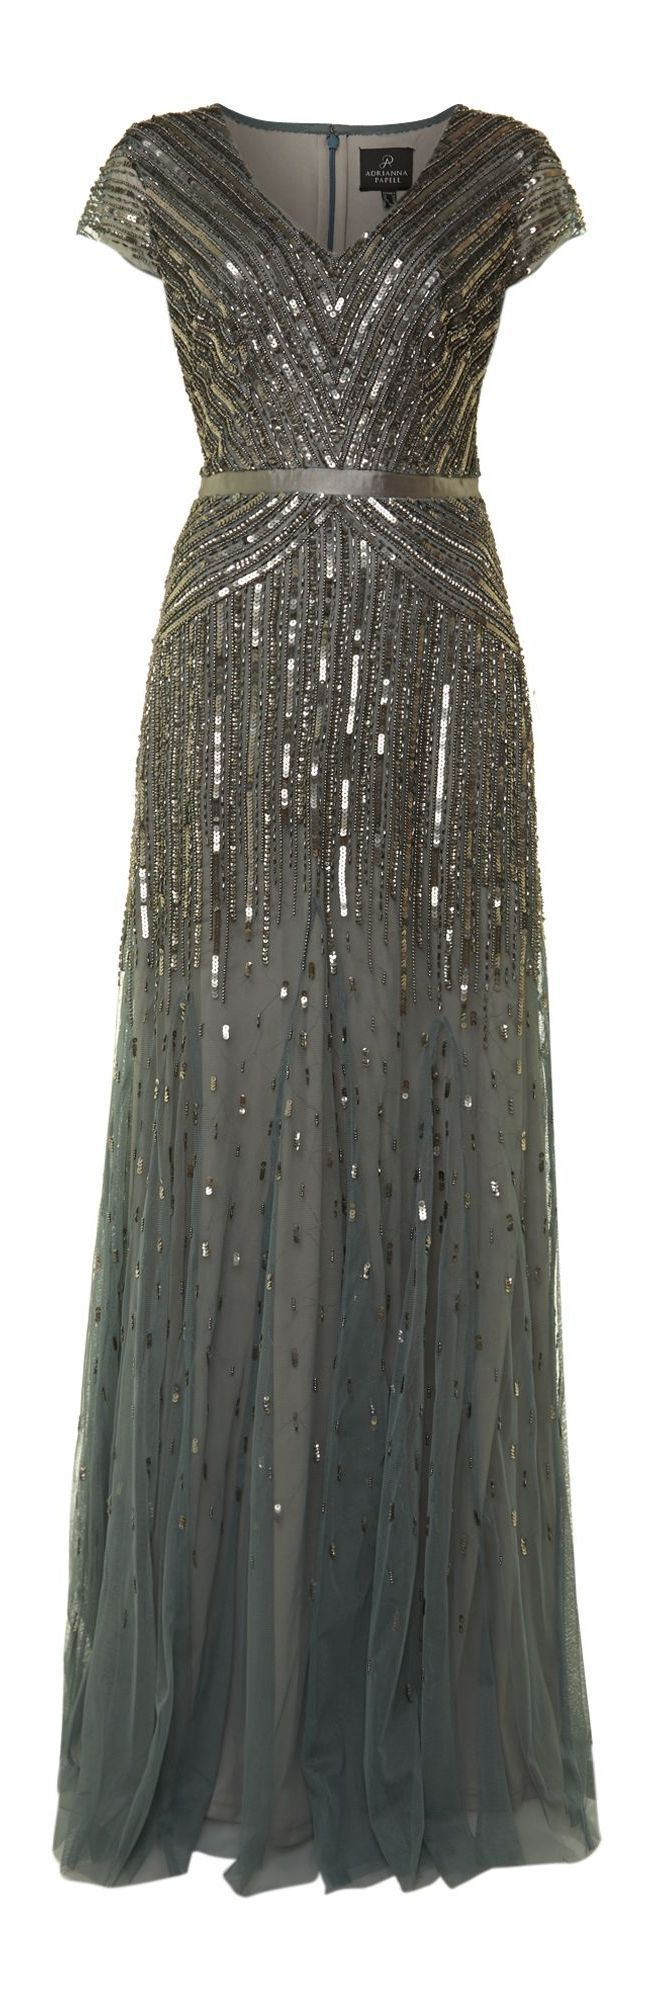 Adrianna Papell Gray Beaded Mesh Maxi Dress